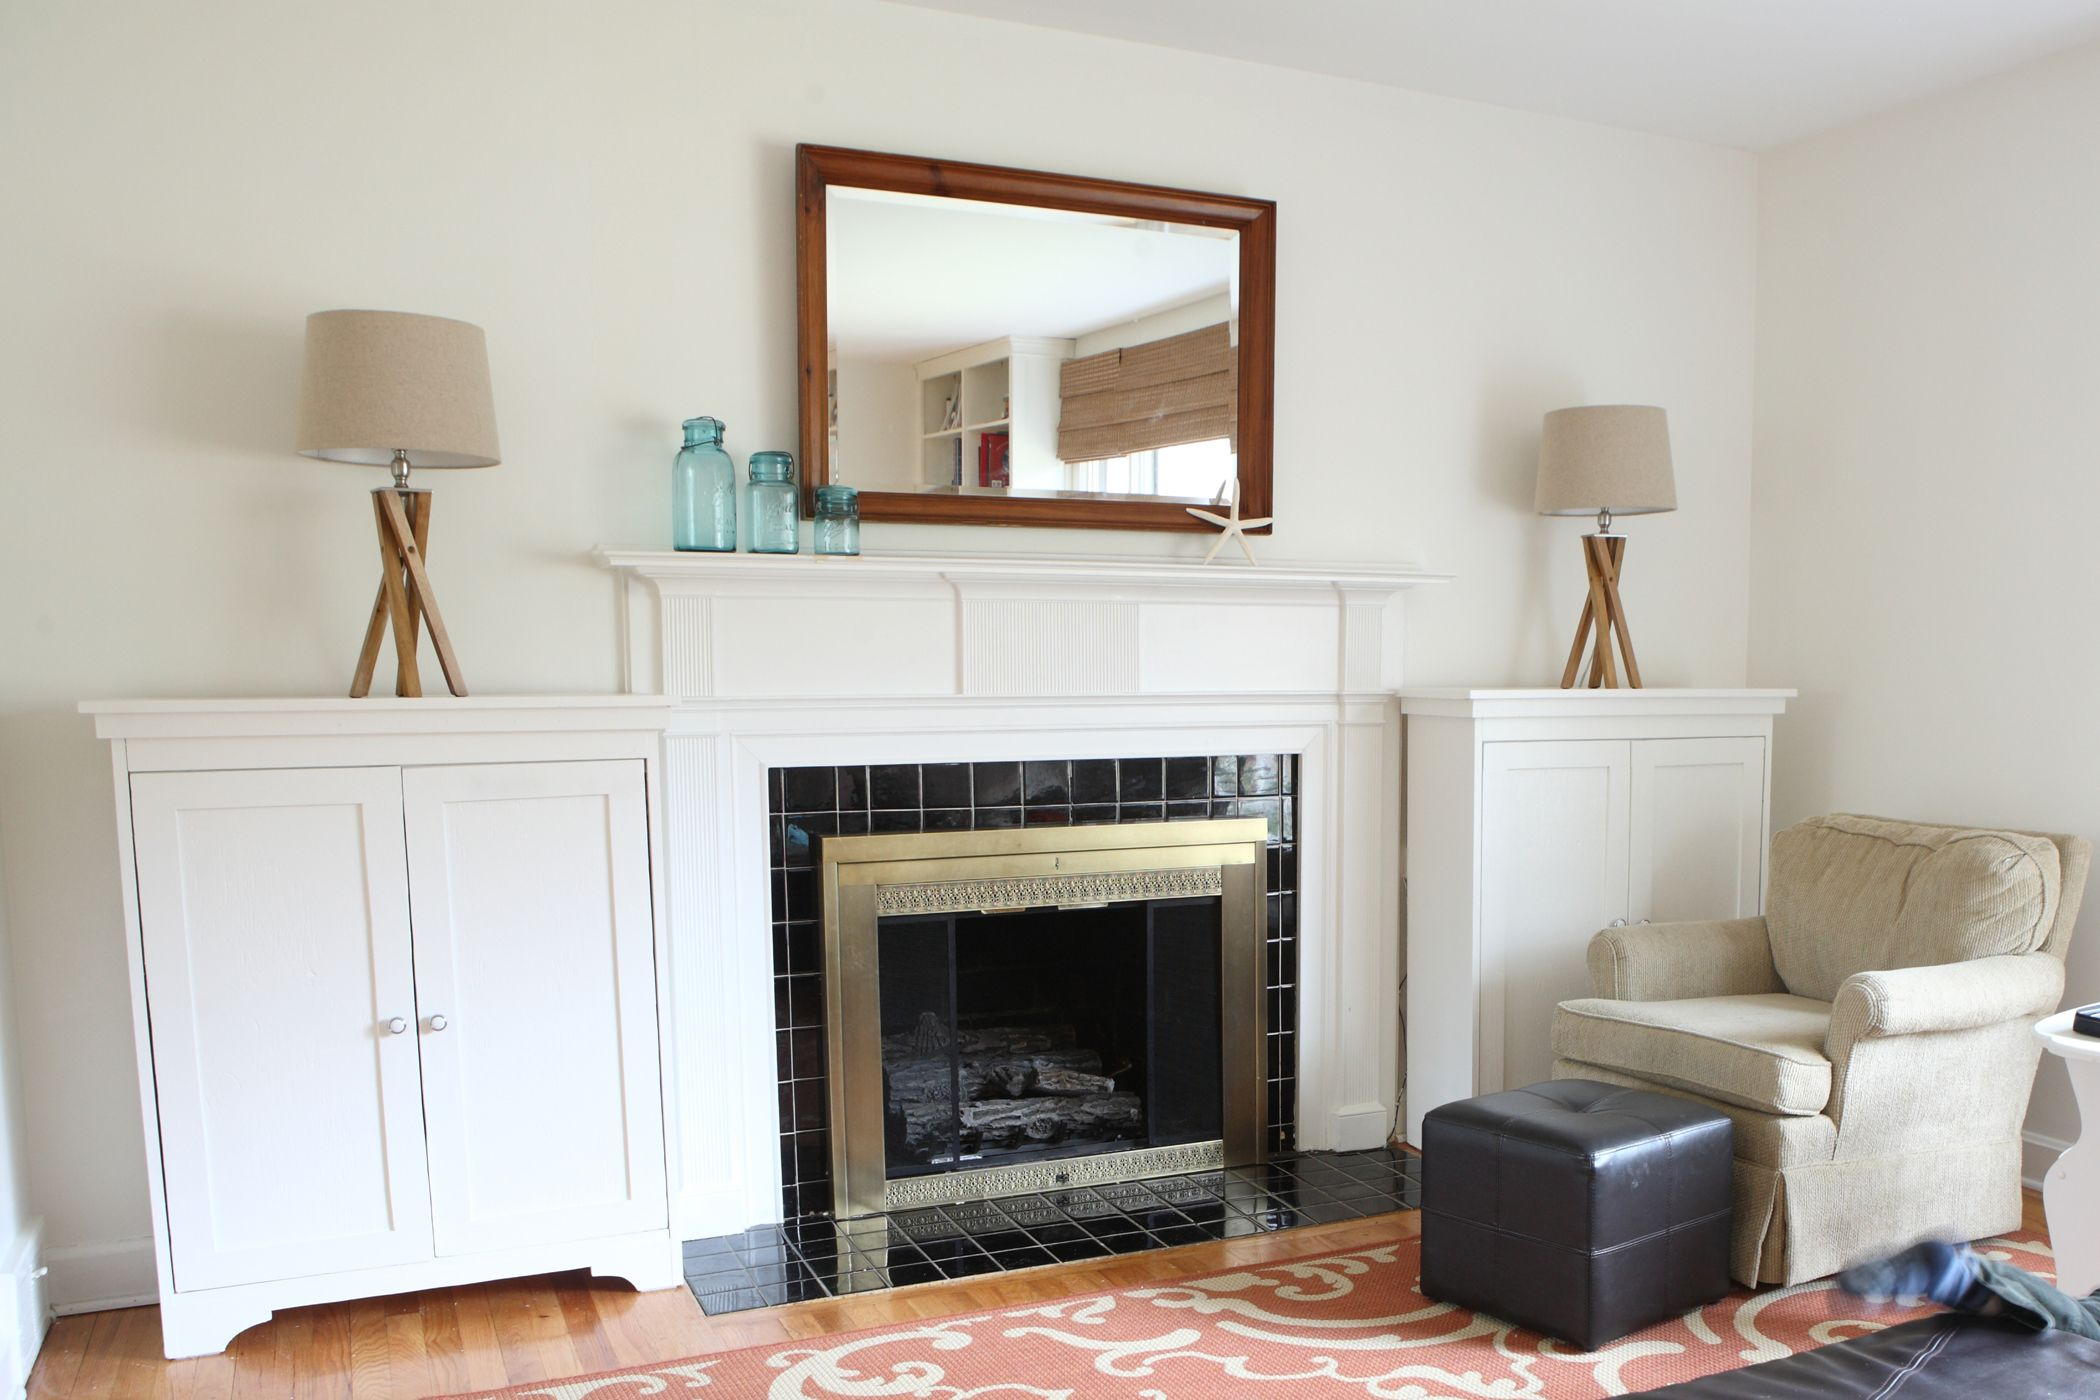 Freestanding Living Room Cabinets | Do It Yourself Home Projects ...